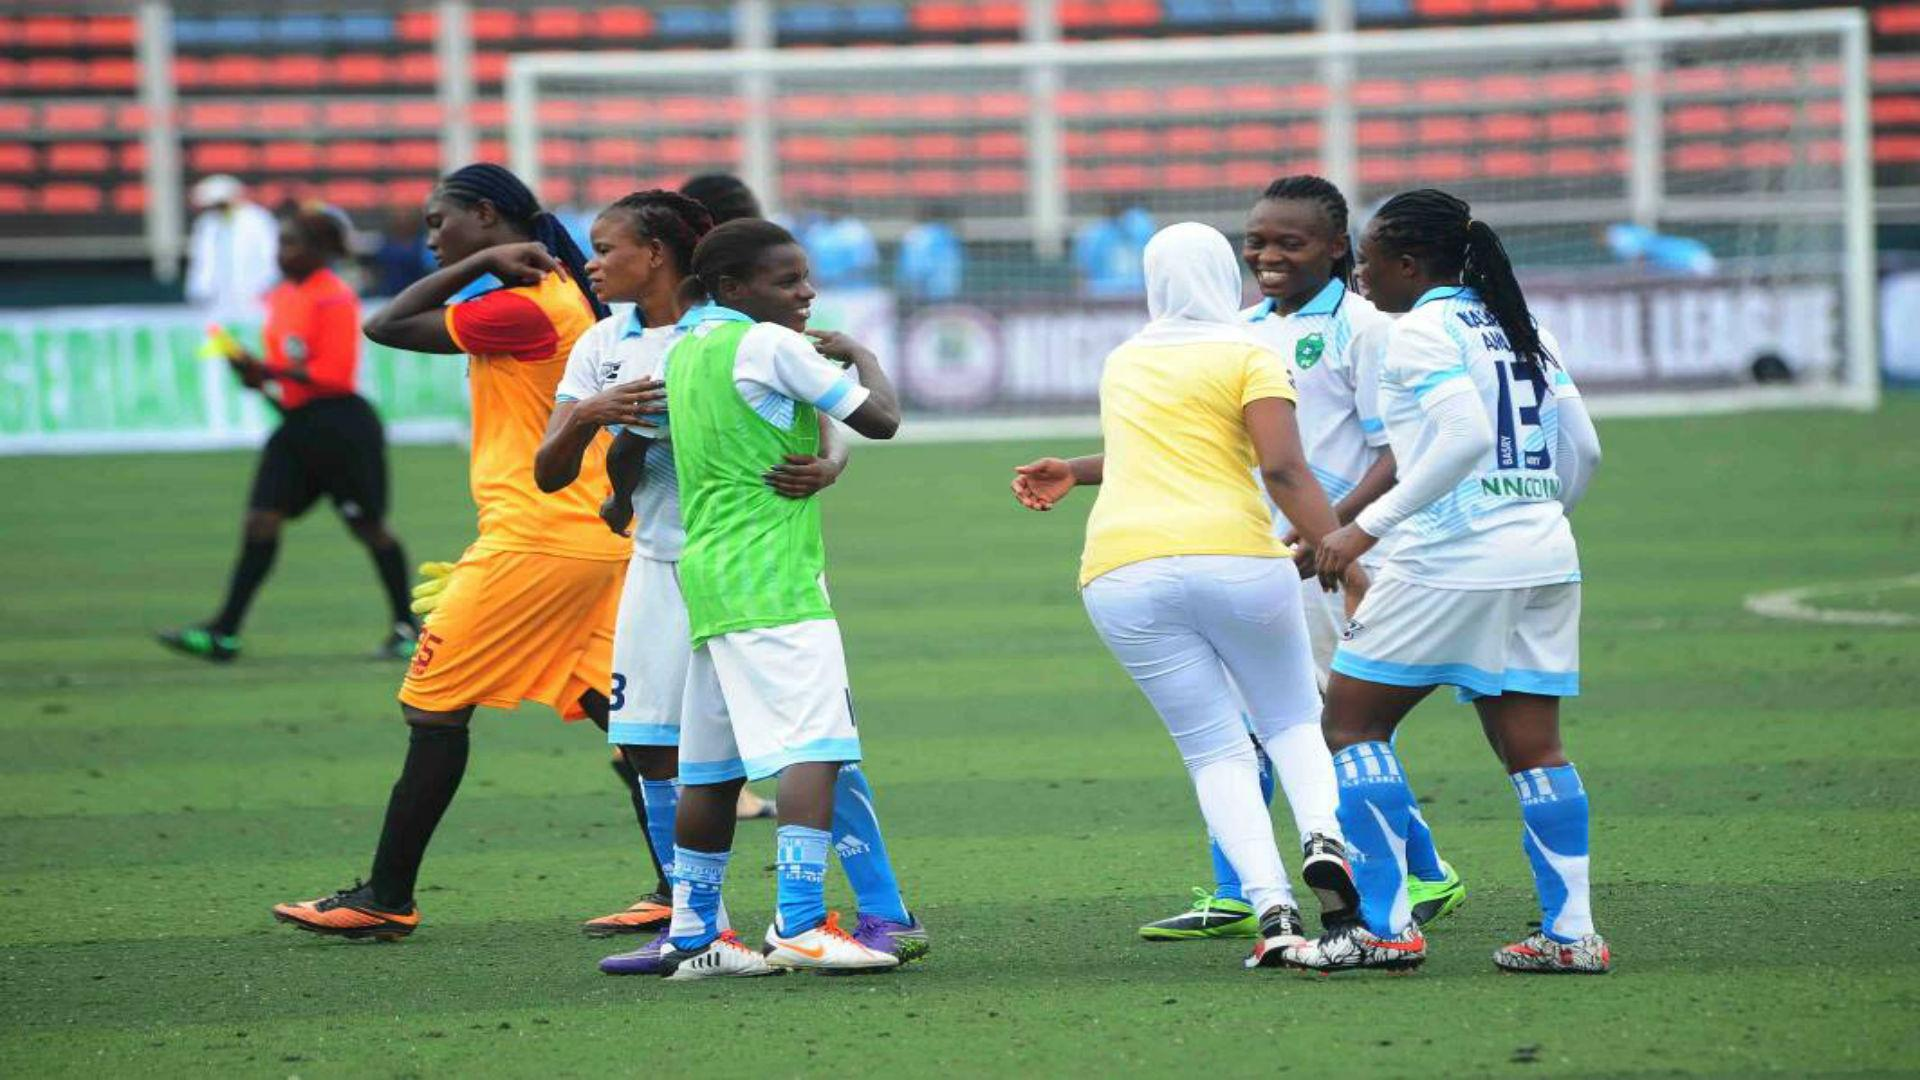 Rivers Angels and Nasarawa Amazons are through to Women's Federation Cup final - Yahoo Sport Australia